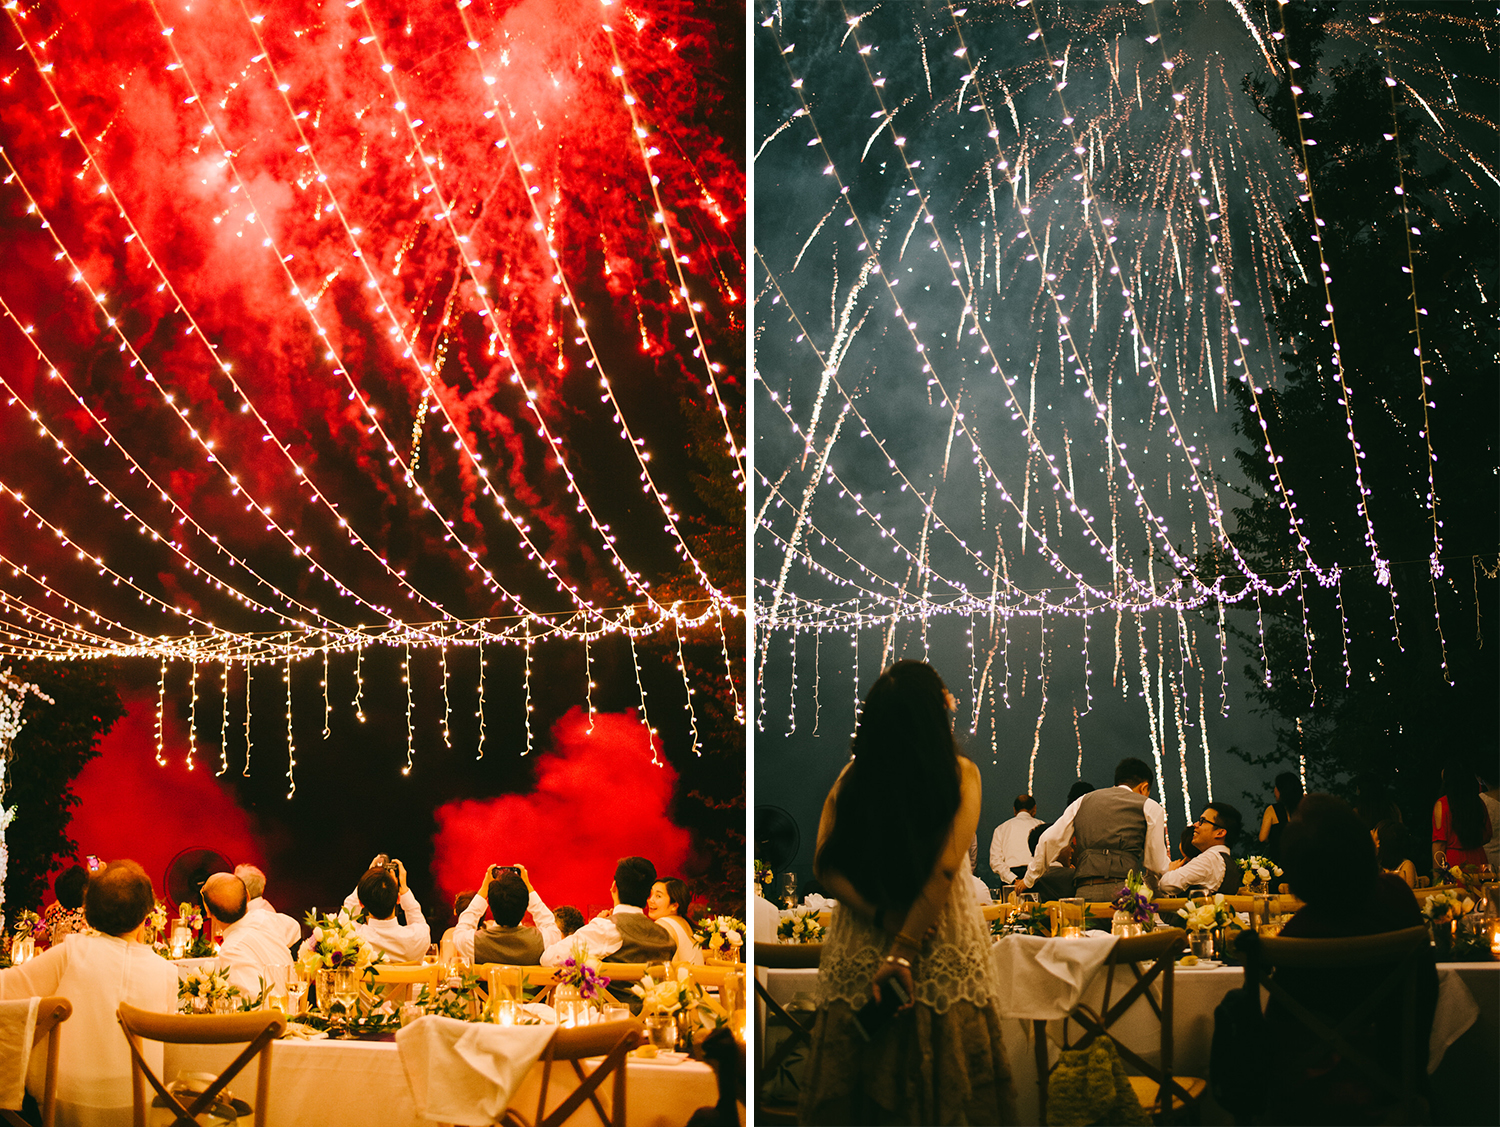 phuket wedding-diktatphotography-alex&andy wedding-153